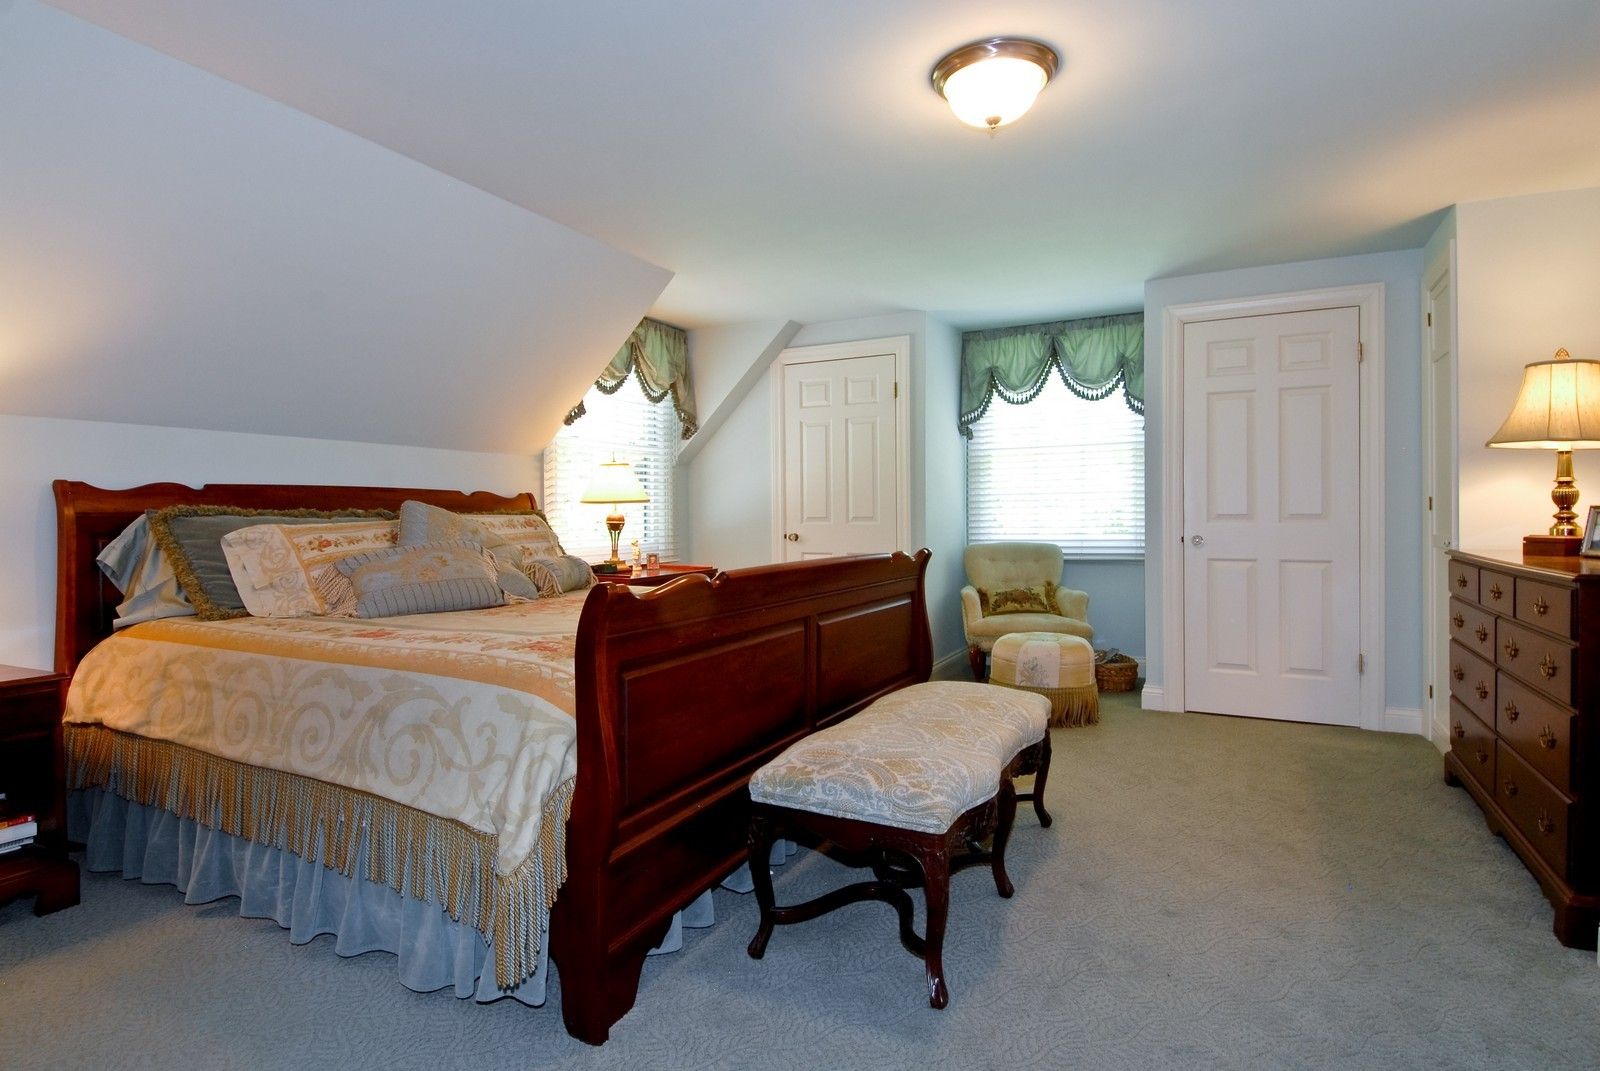 Real Estate Photography - 417 S McKinley, St Charles, IL, 60174 - Master Bedroom